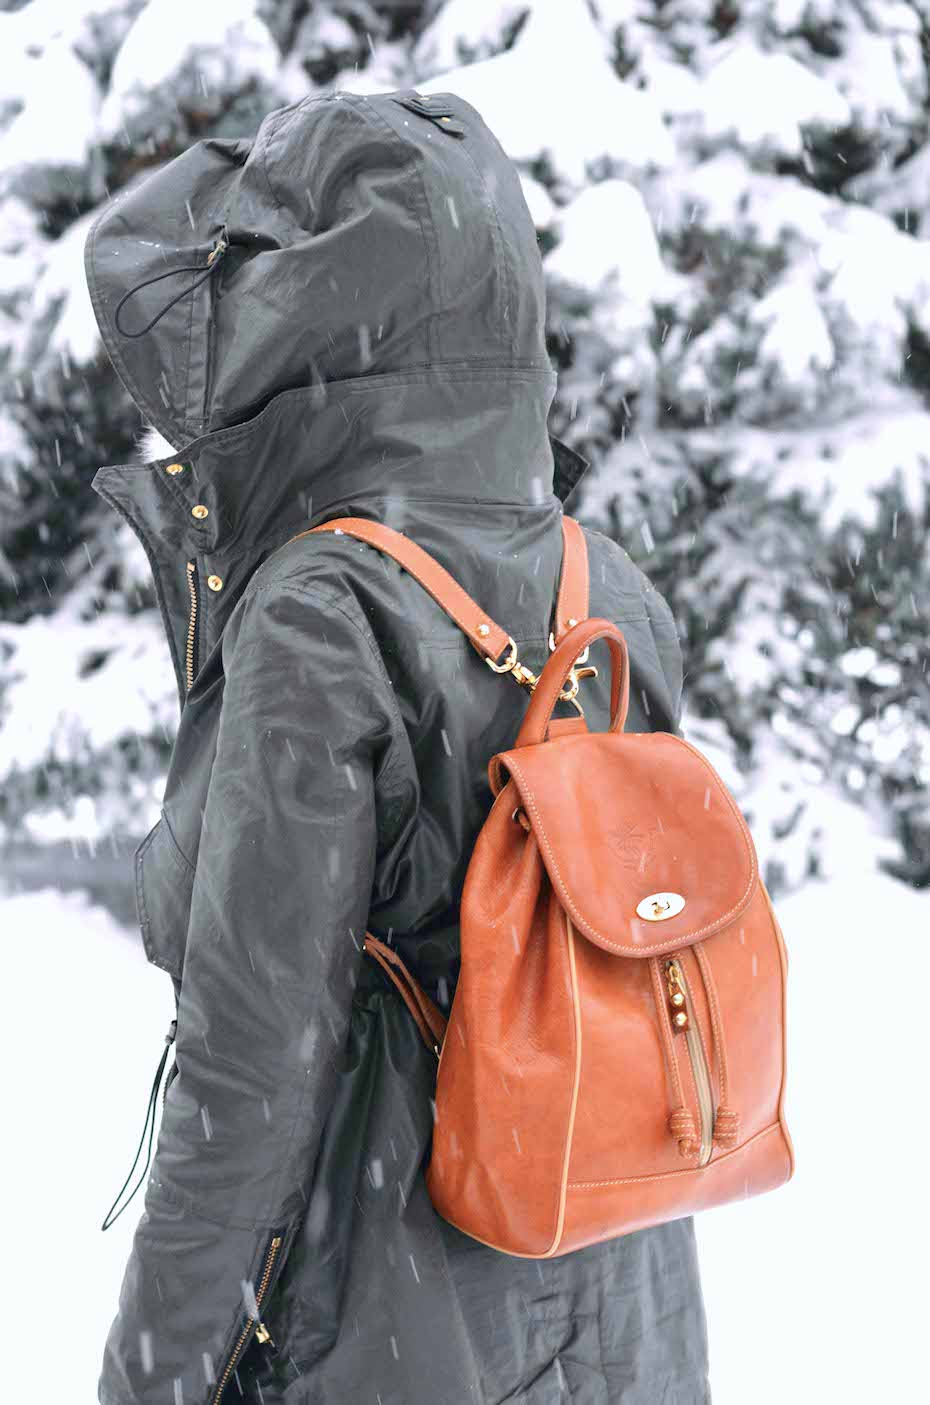 Warm Vintage Leather Backpack